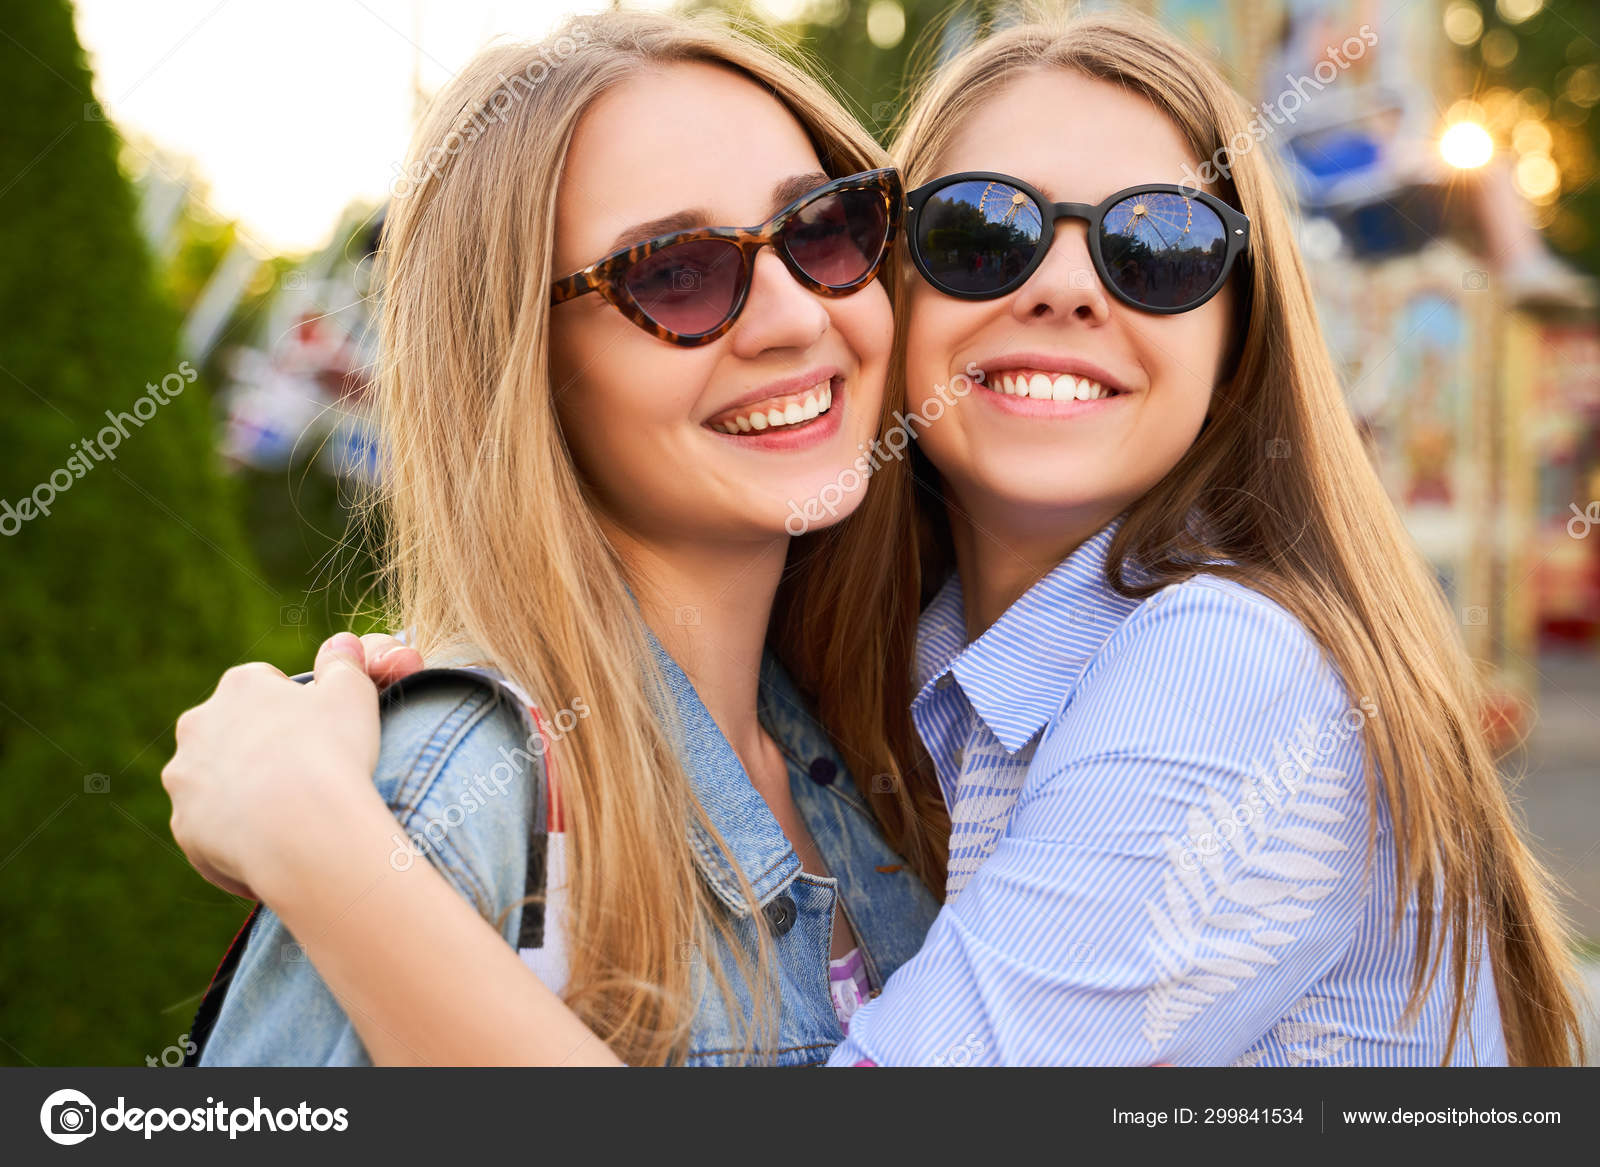 Two Girls Best Friends Happily Hug Each Other Stock Photo C Sky Dog 299841534